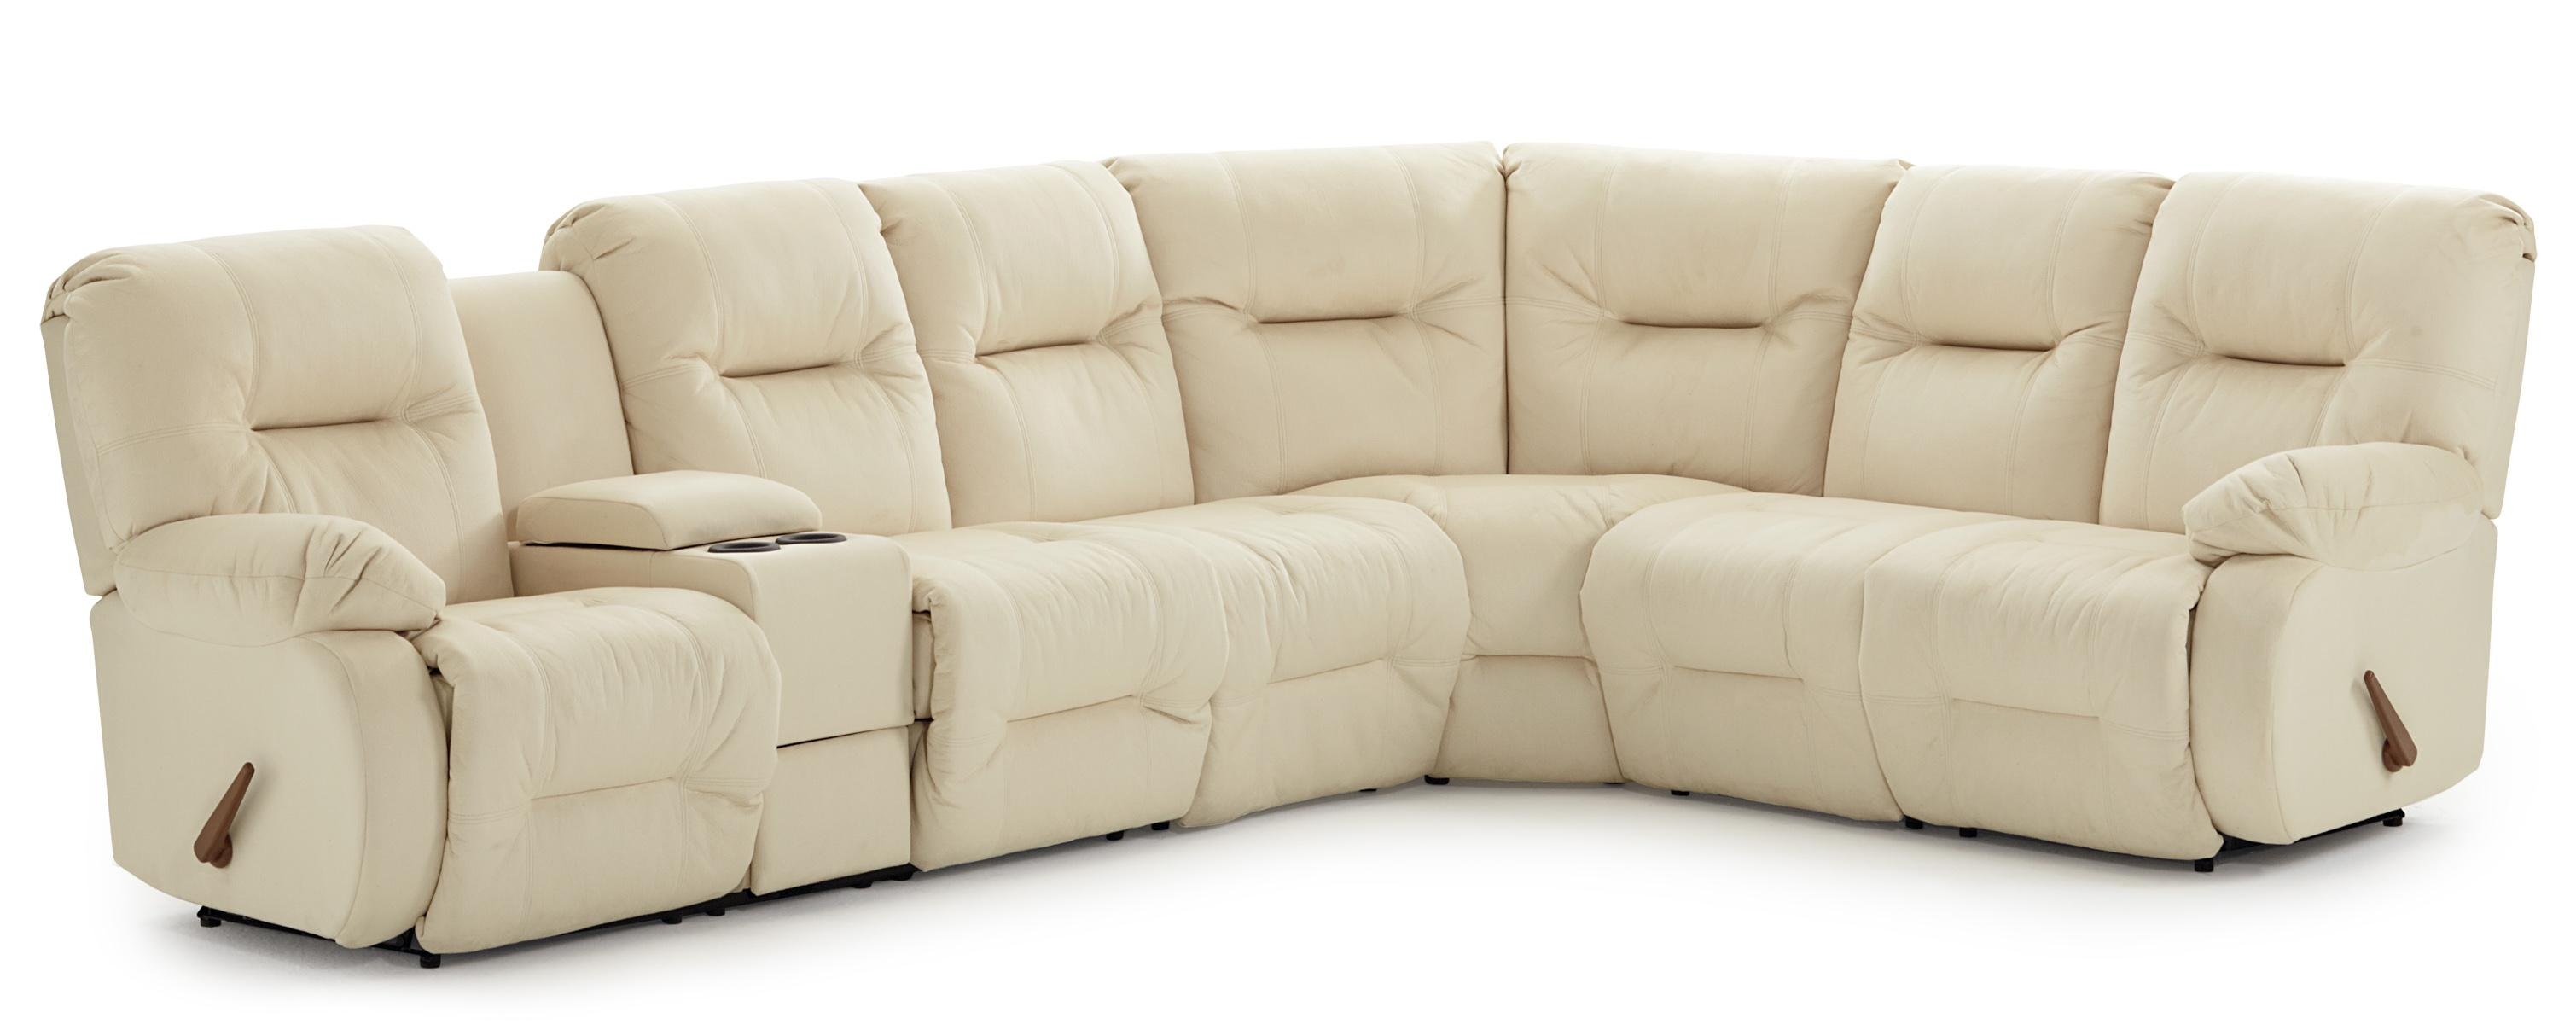 Brinley 2 Reclining Sectional Sofa by Best Home Furnishings at Best Home Furnishings